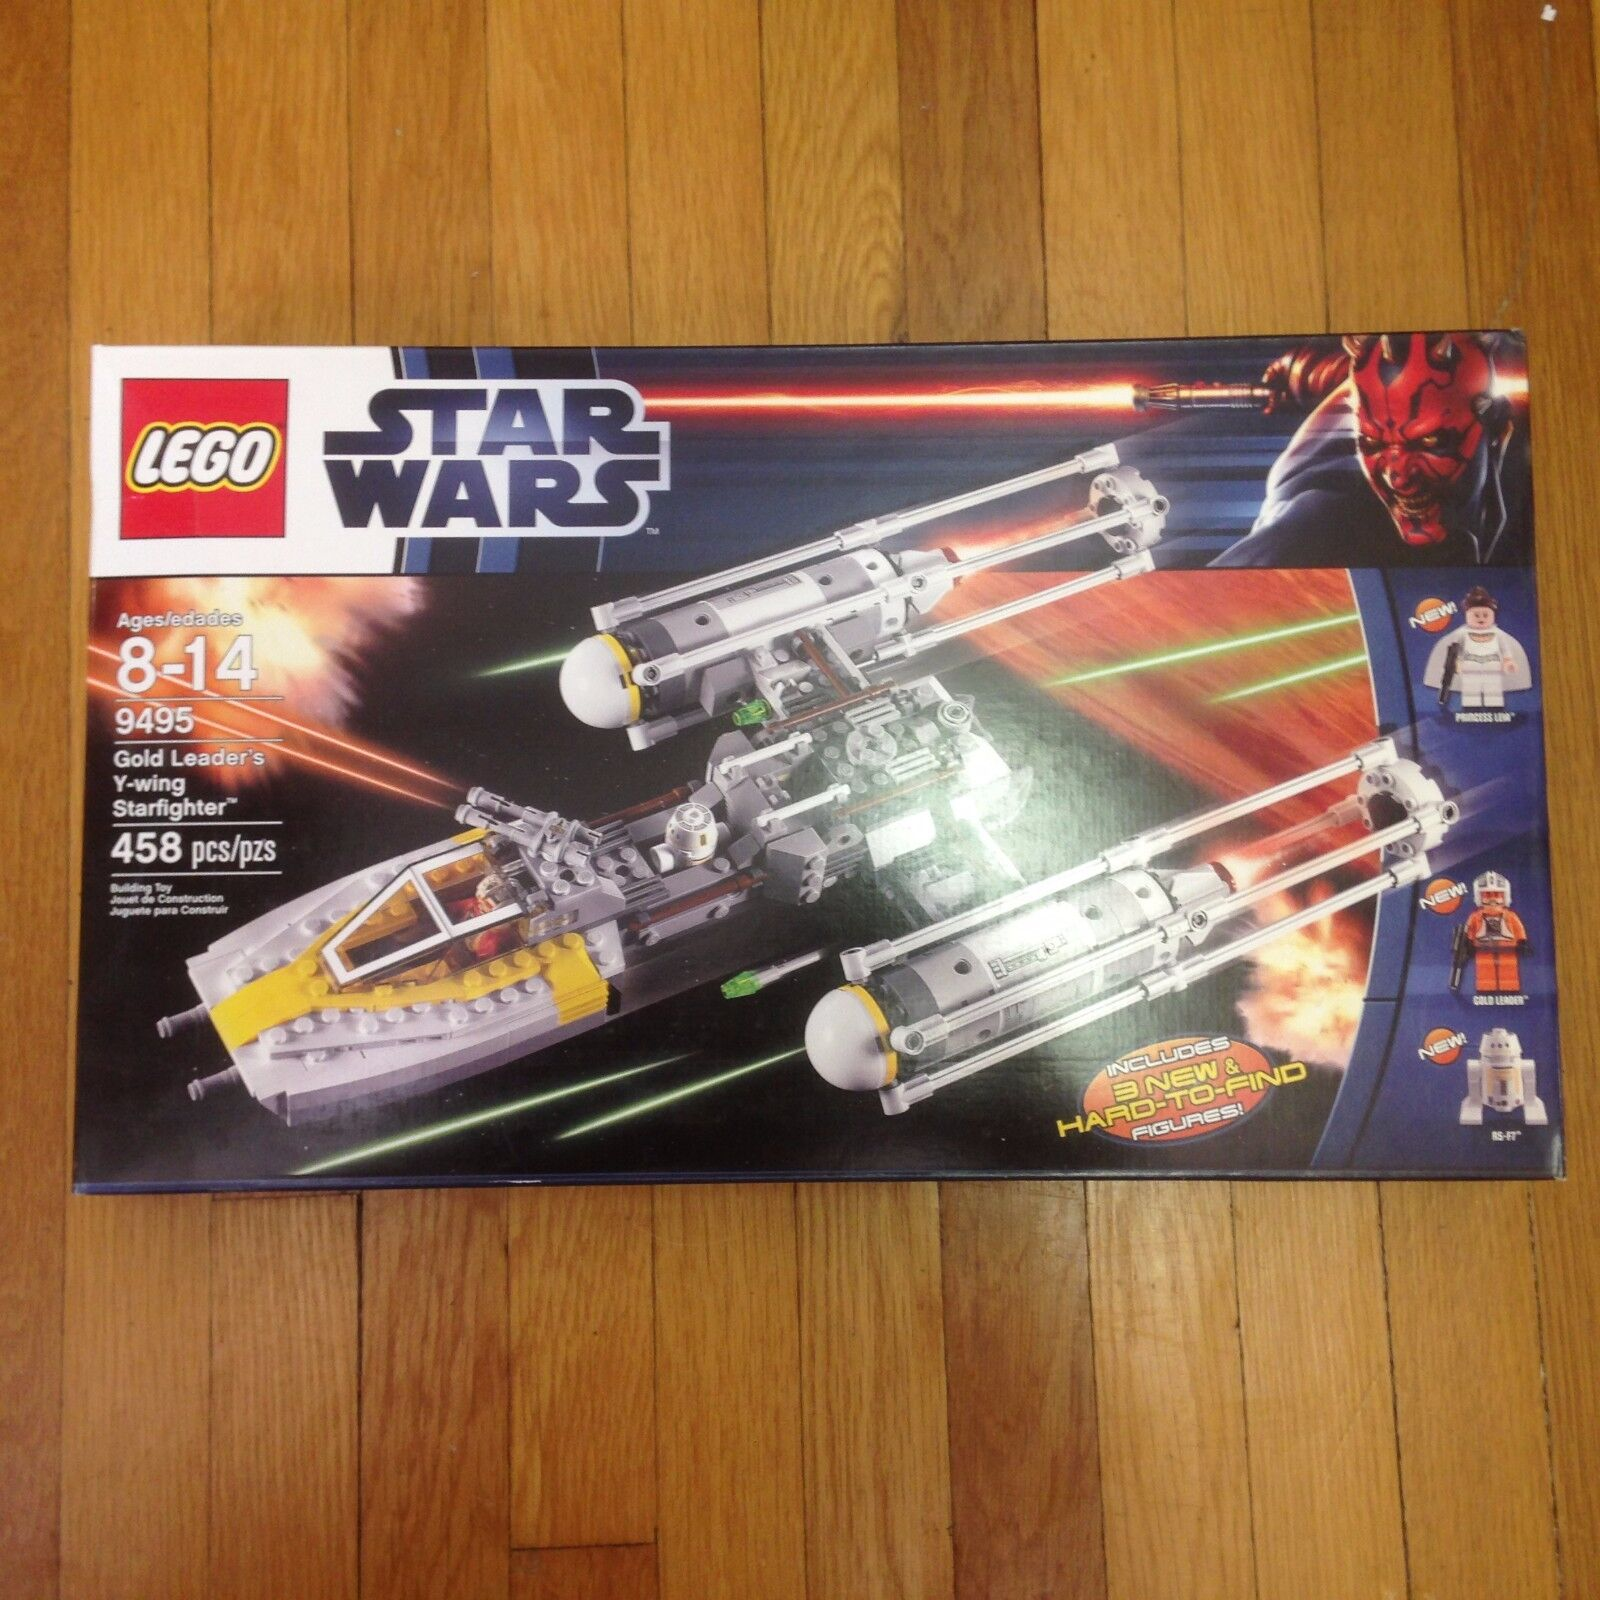 LEGO STAR WARS oro LEADER'S Y-WING STARFIGHTER 9495